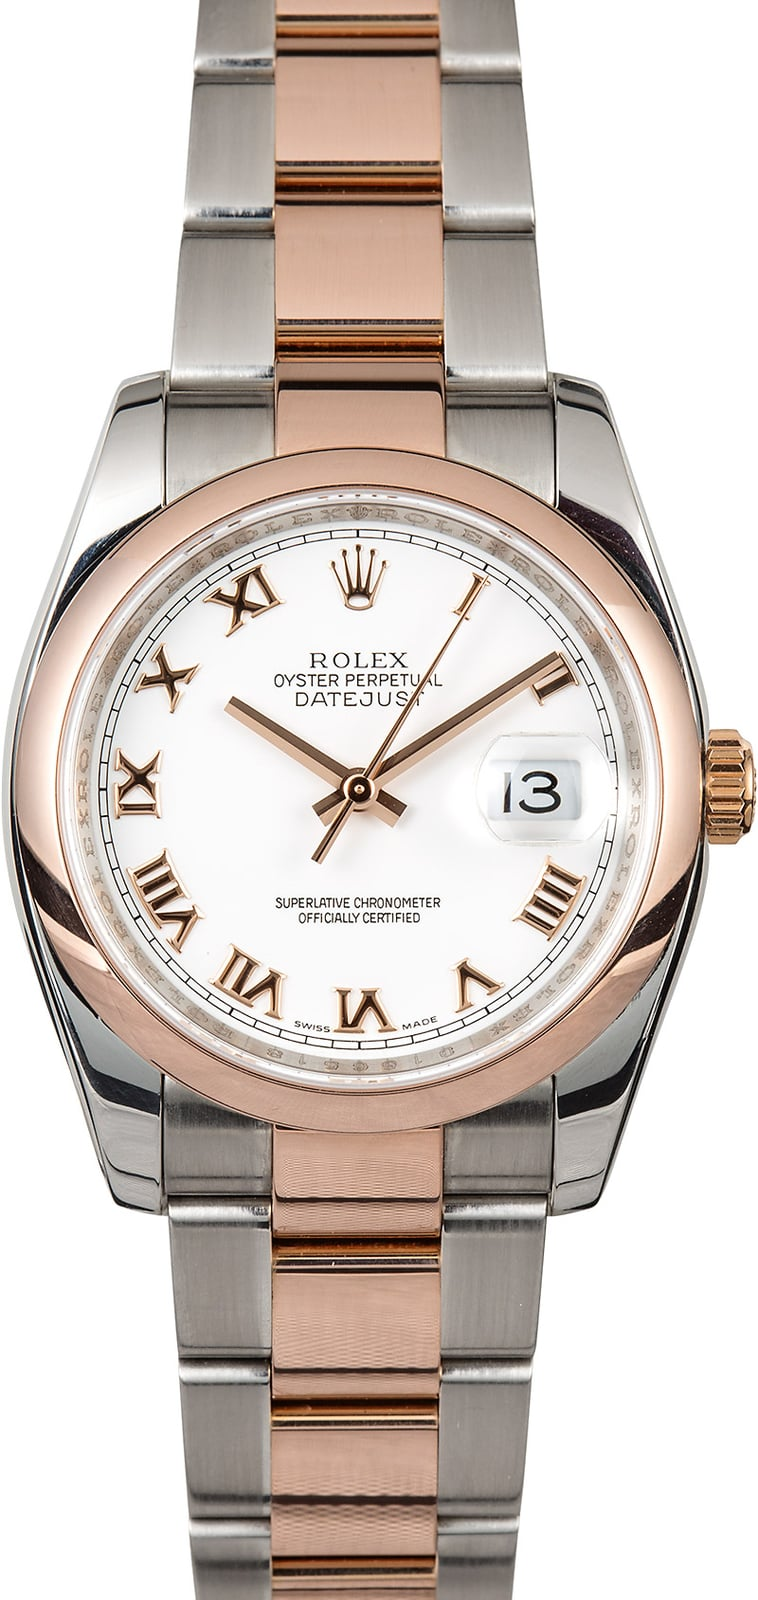 Rolex Datejust 116201 Twotone Rose Gold. Lucky Pendant. Watch Pendant. Class Watches. Mini Gold Chains. Orange Necklace. Navy Rings. Double Band Rings. Lily Engagement Rings